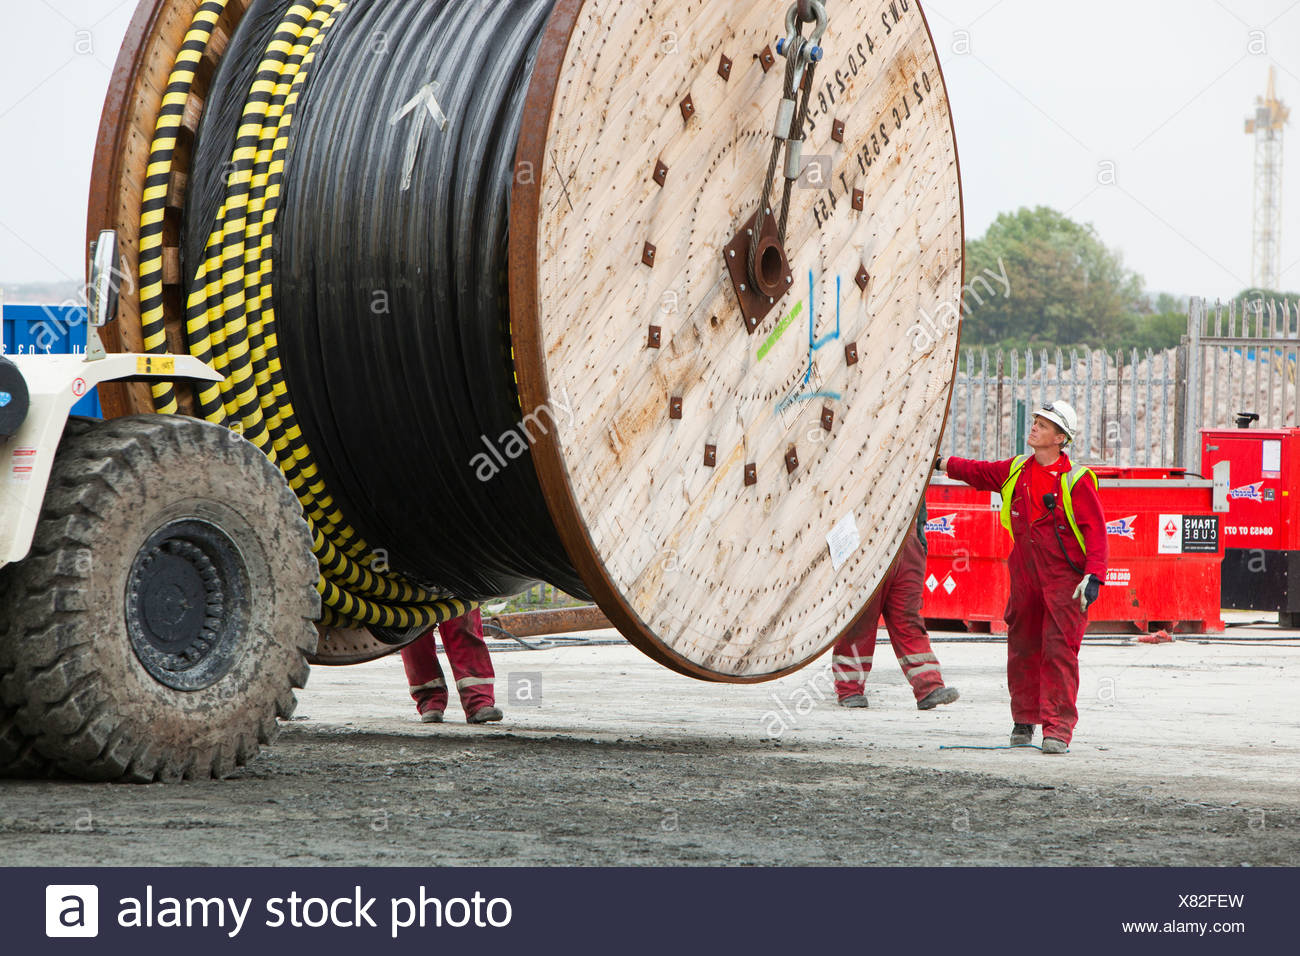 Offshore electric cabling for the Walney Offshore windfarm project being loaded onto a cable laying vessel in the docks - Stock Image